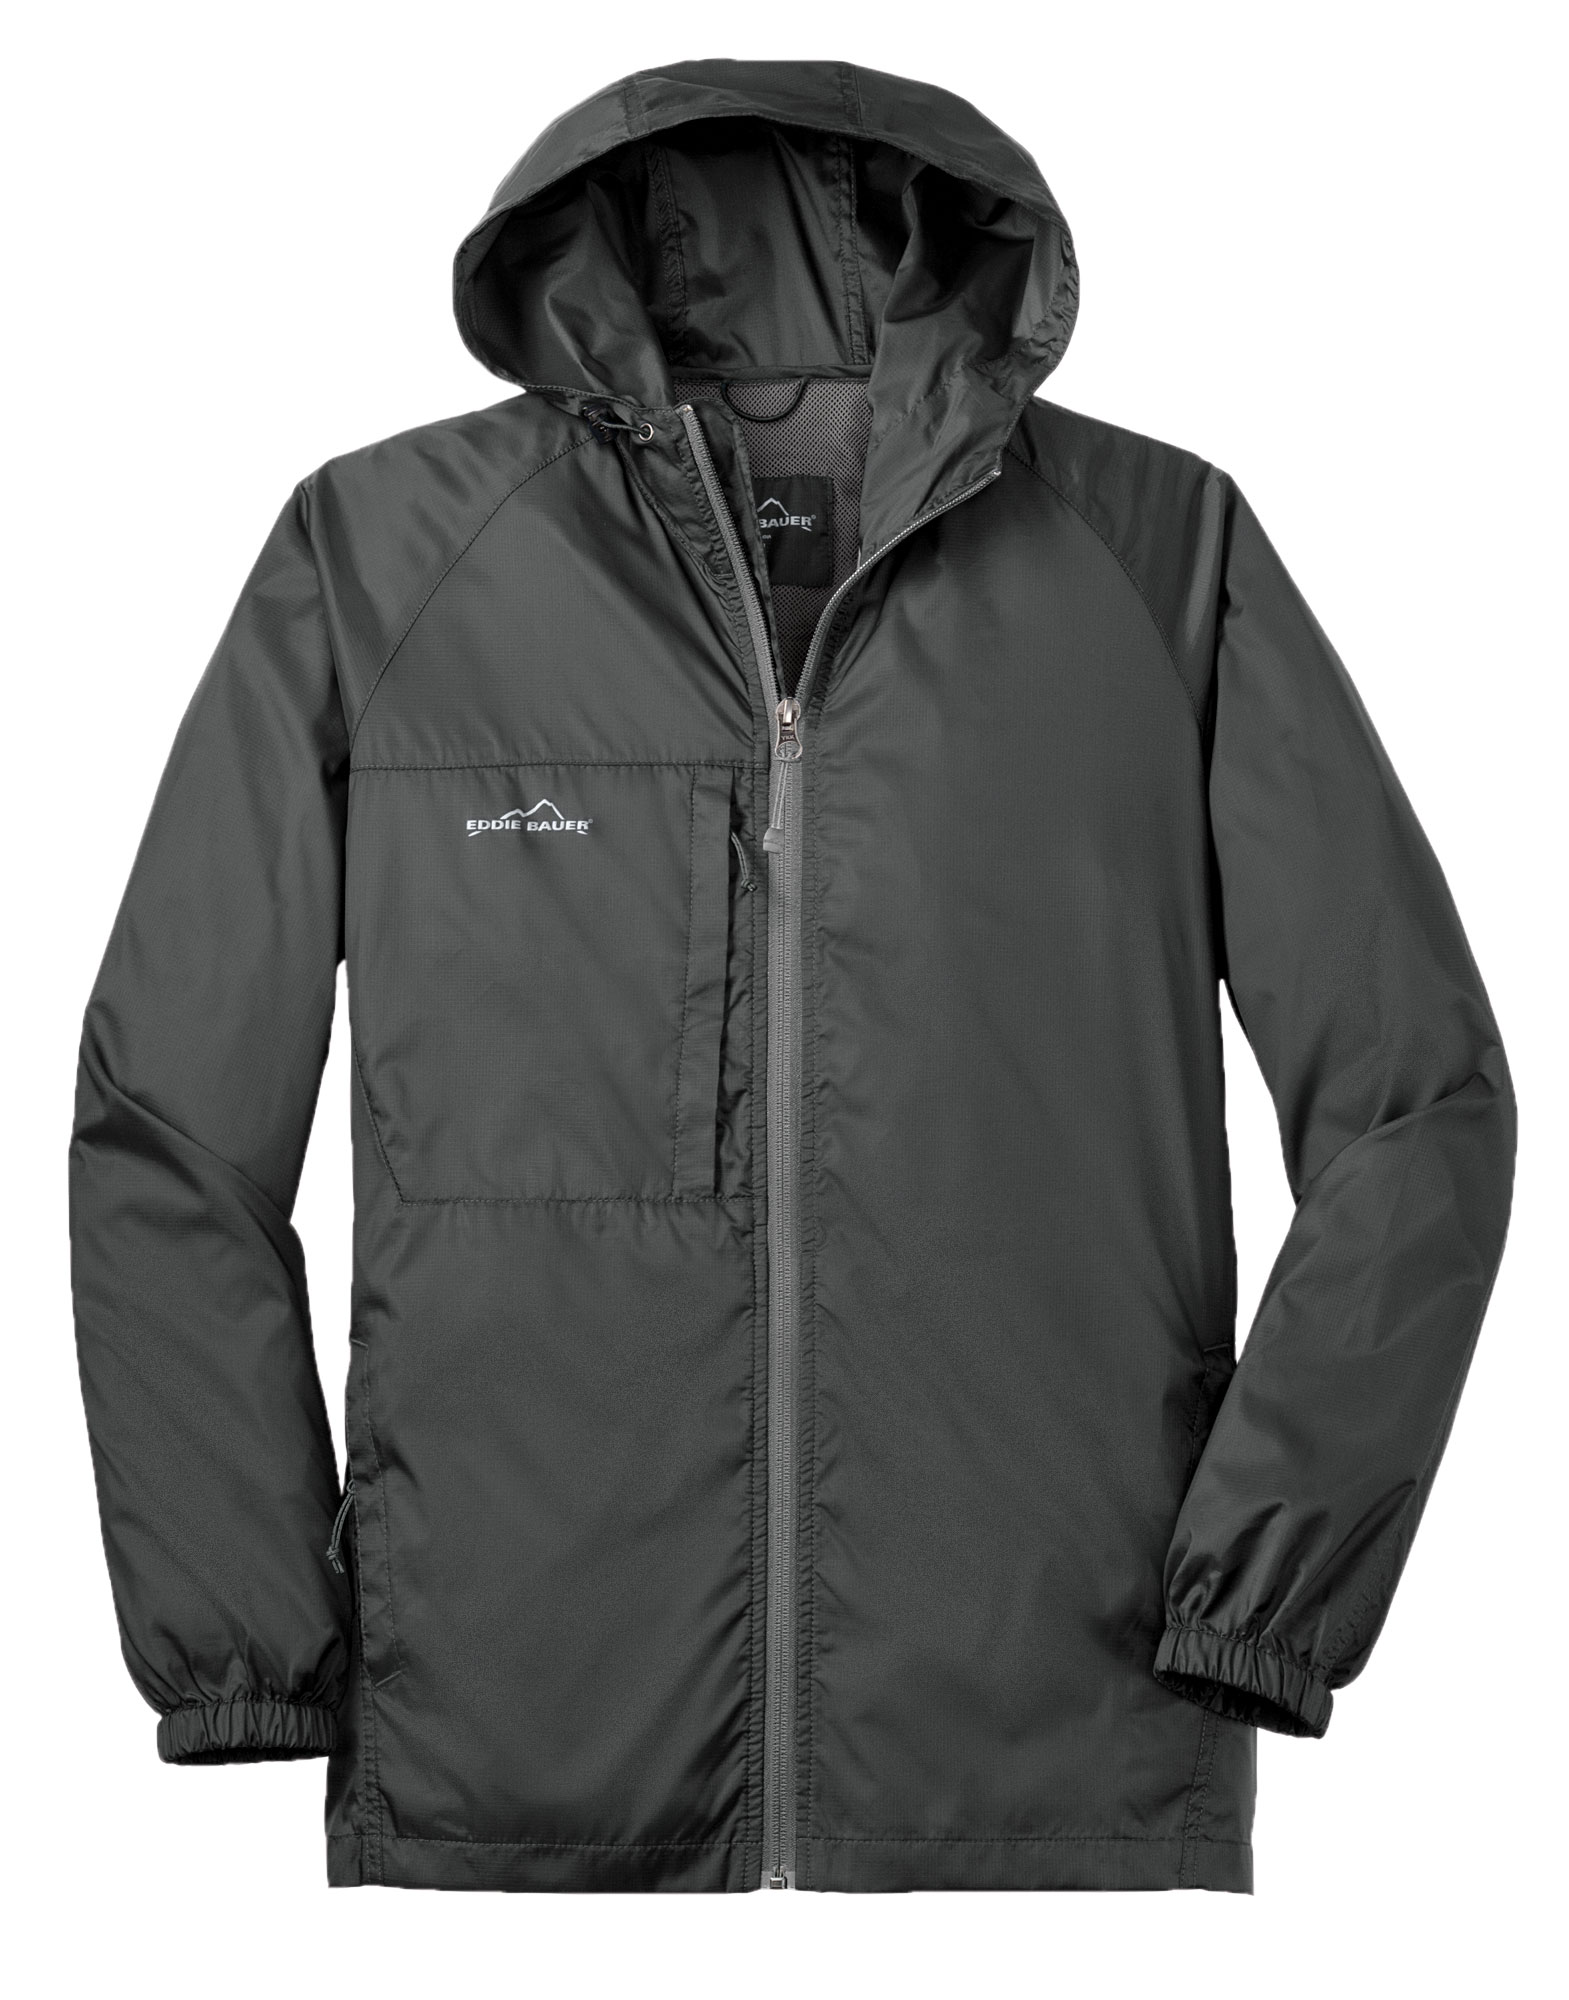 Custom Eddie Bauer 174 Mens Packable Wind Jacket